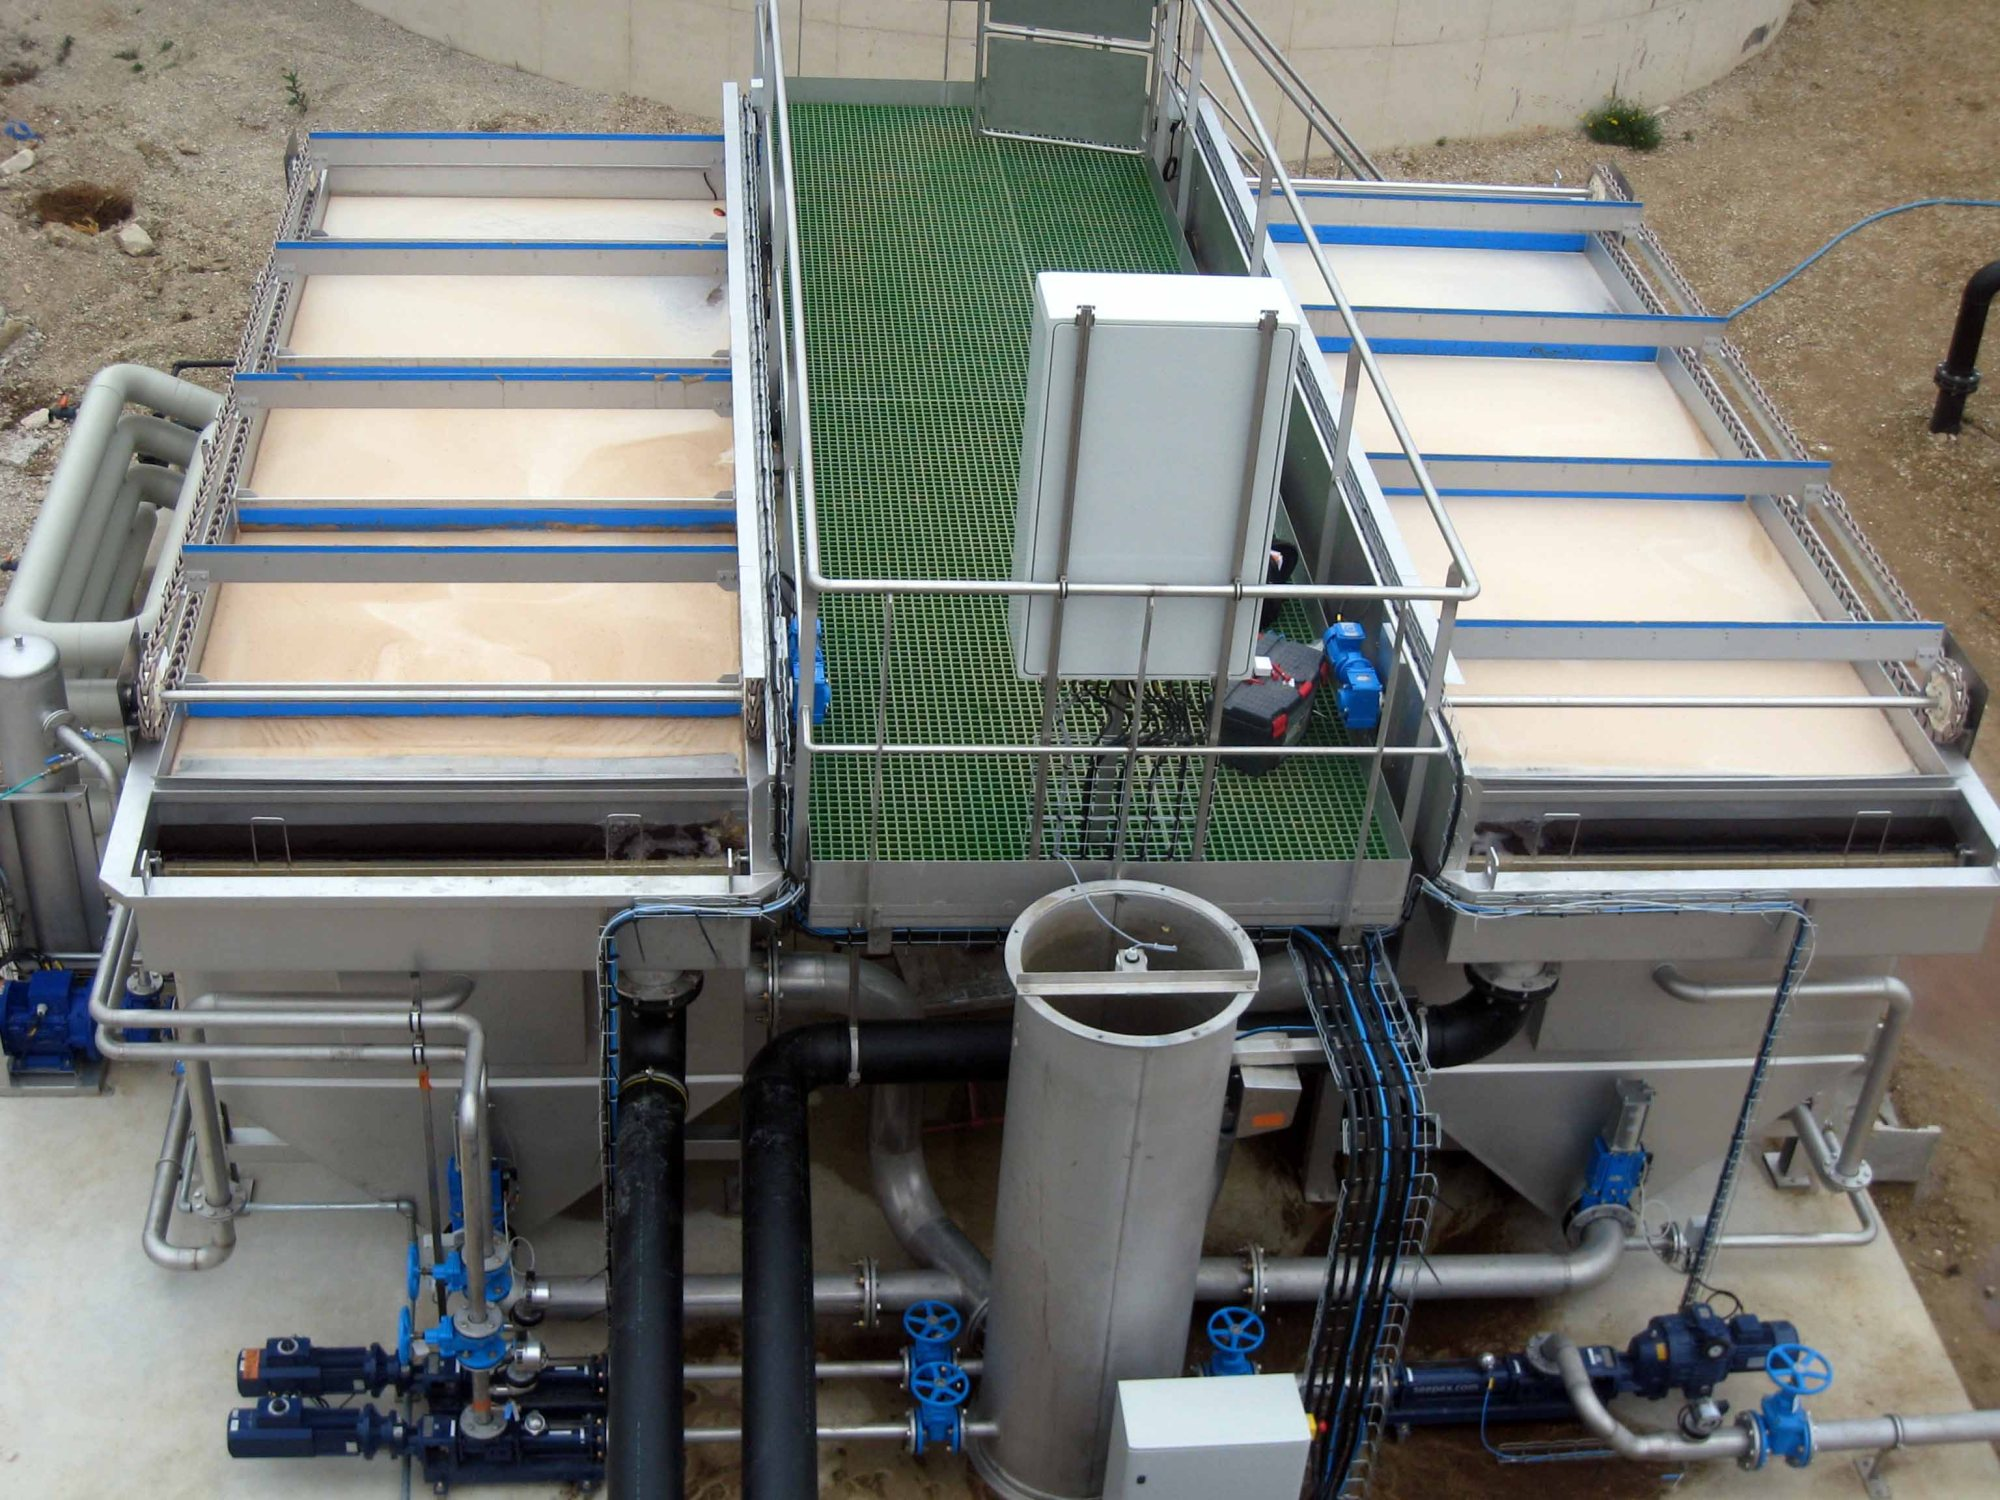 hight resolution of wpl dissolved air flotation system daf industrial wastewater treatment trade effluent wastewater treatment